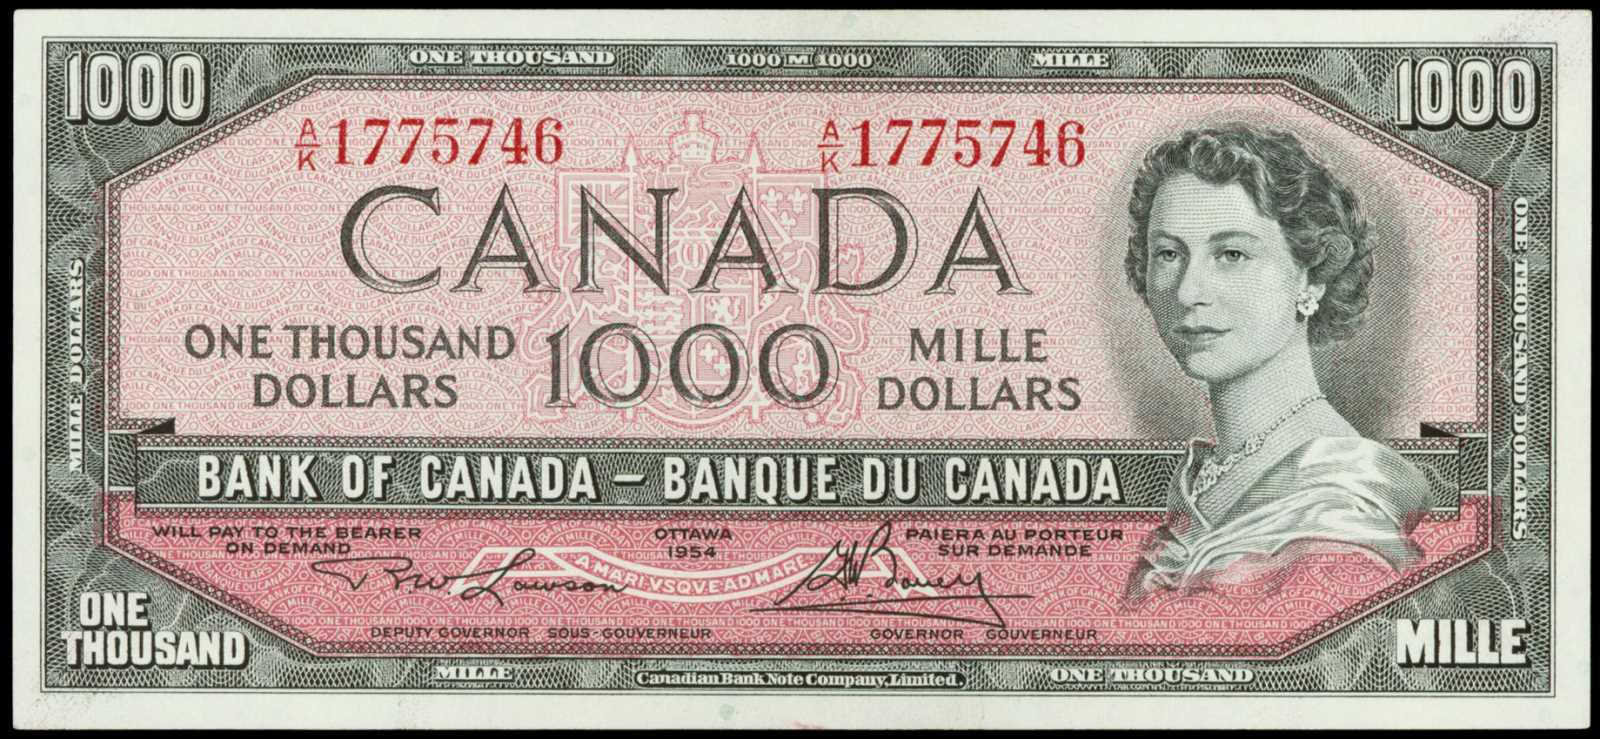 picture regarding Fake 1000 Dollar Bill Printable identified as Bogus 1000 Greenback Invoice Canadian - Refreshing Greenback Wallpaper High definition